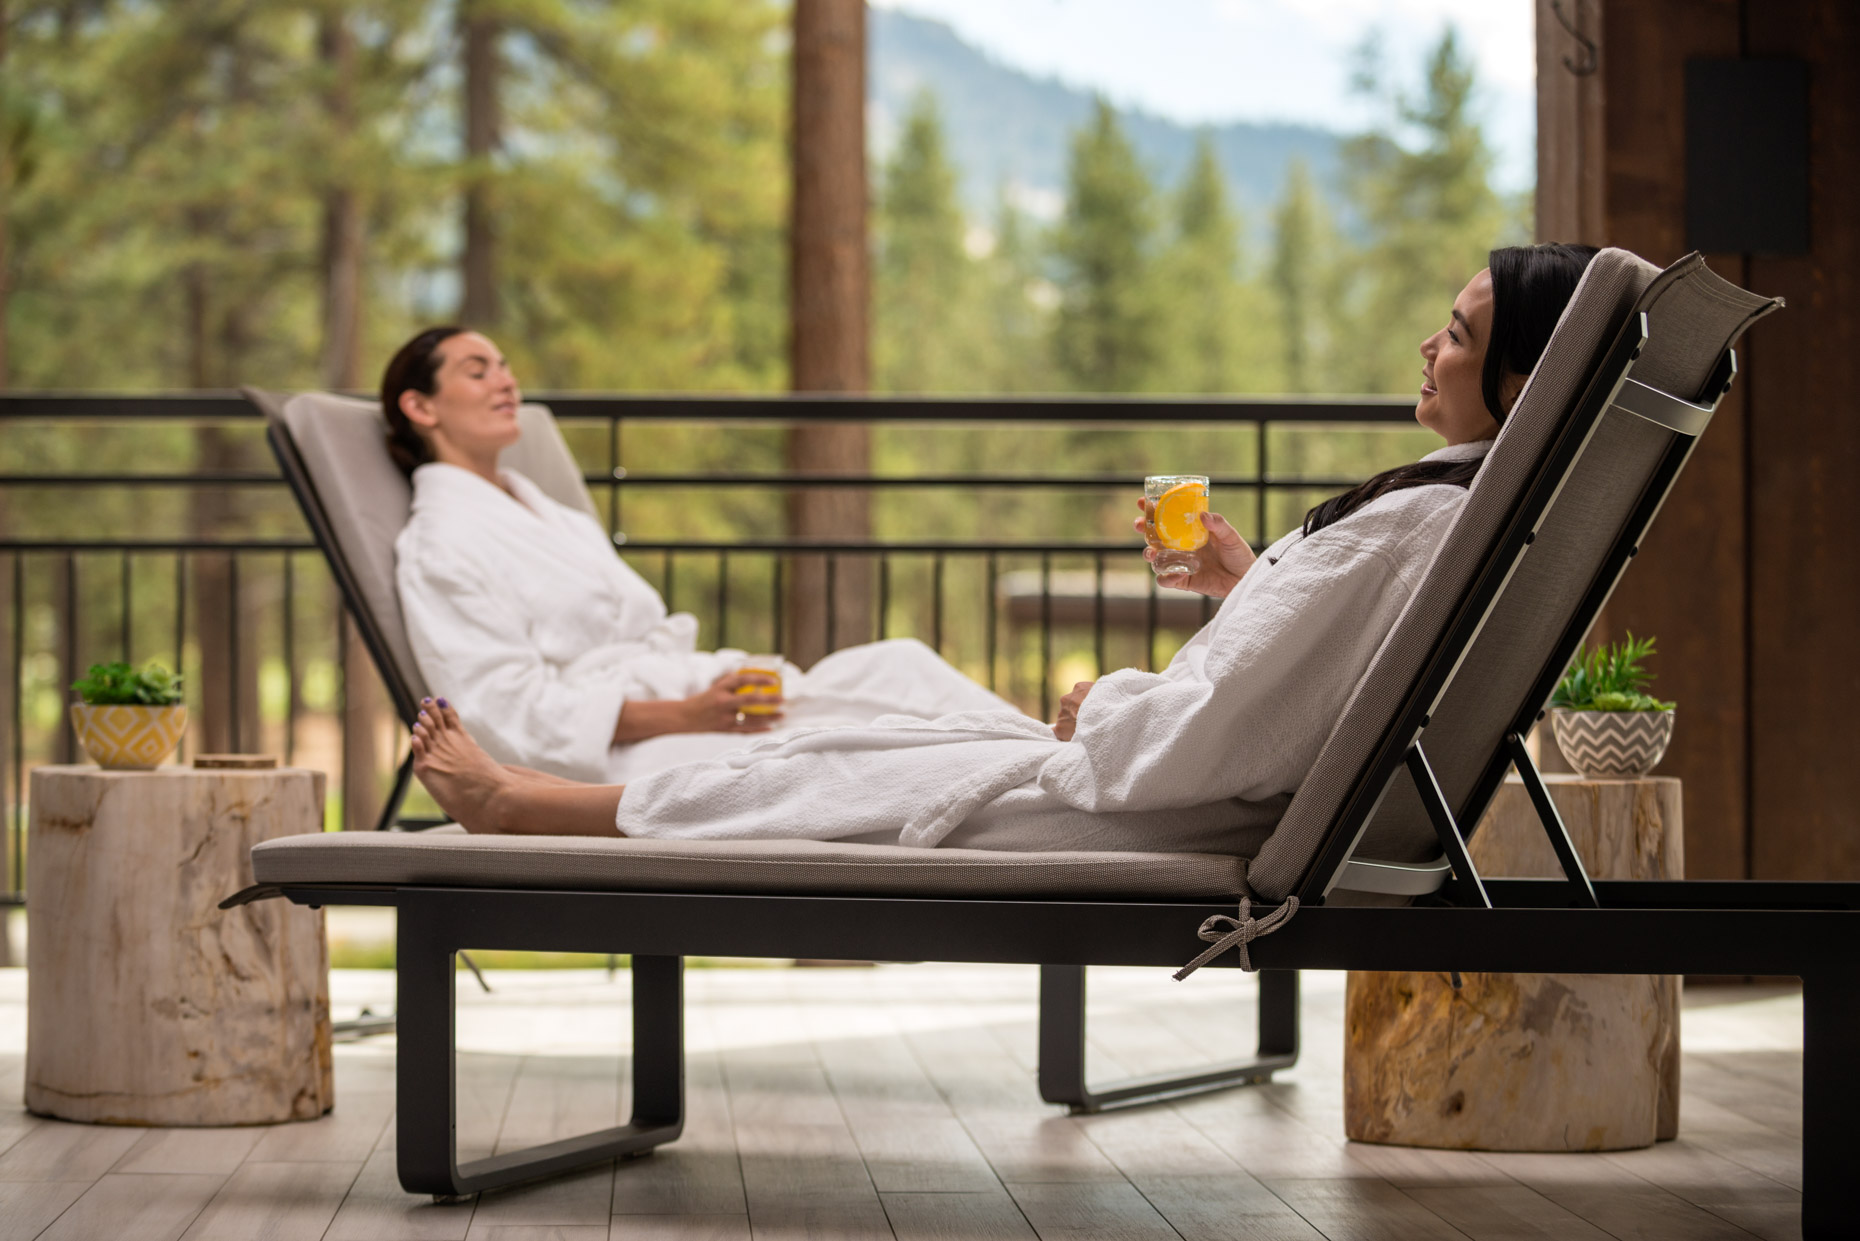 Lifestyle - The Spa at Edgewood Luxury Resort - Lake Tahoe, Nevada